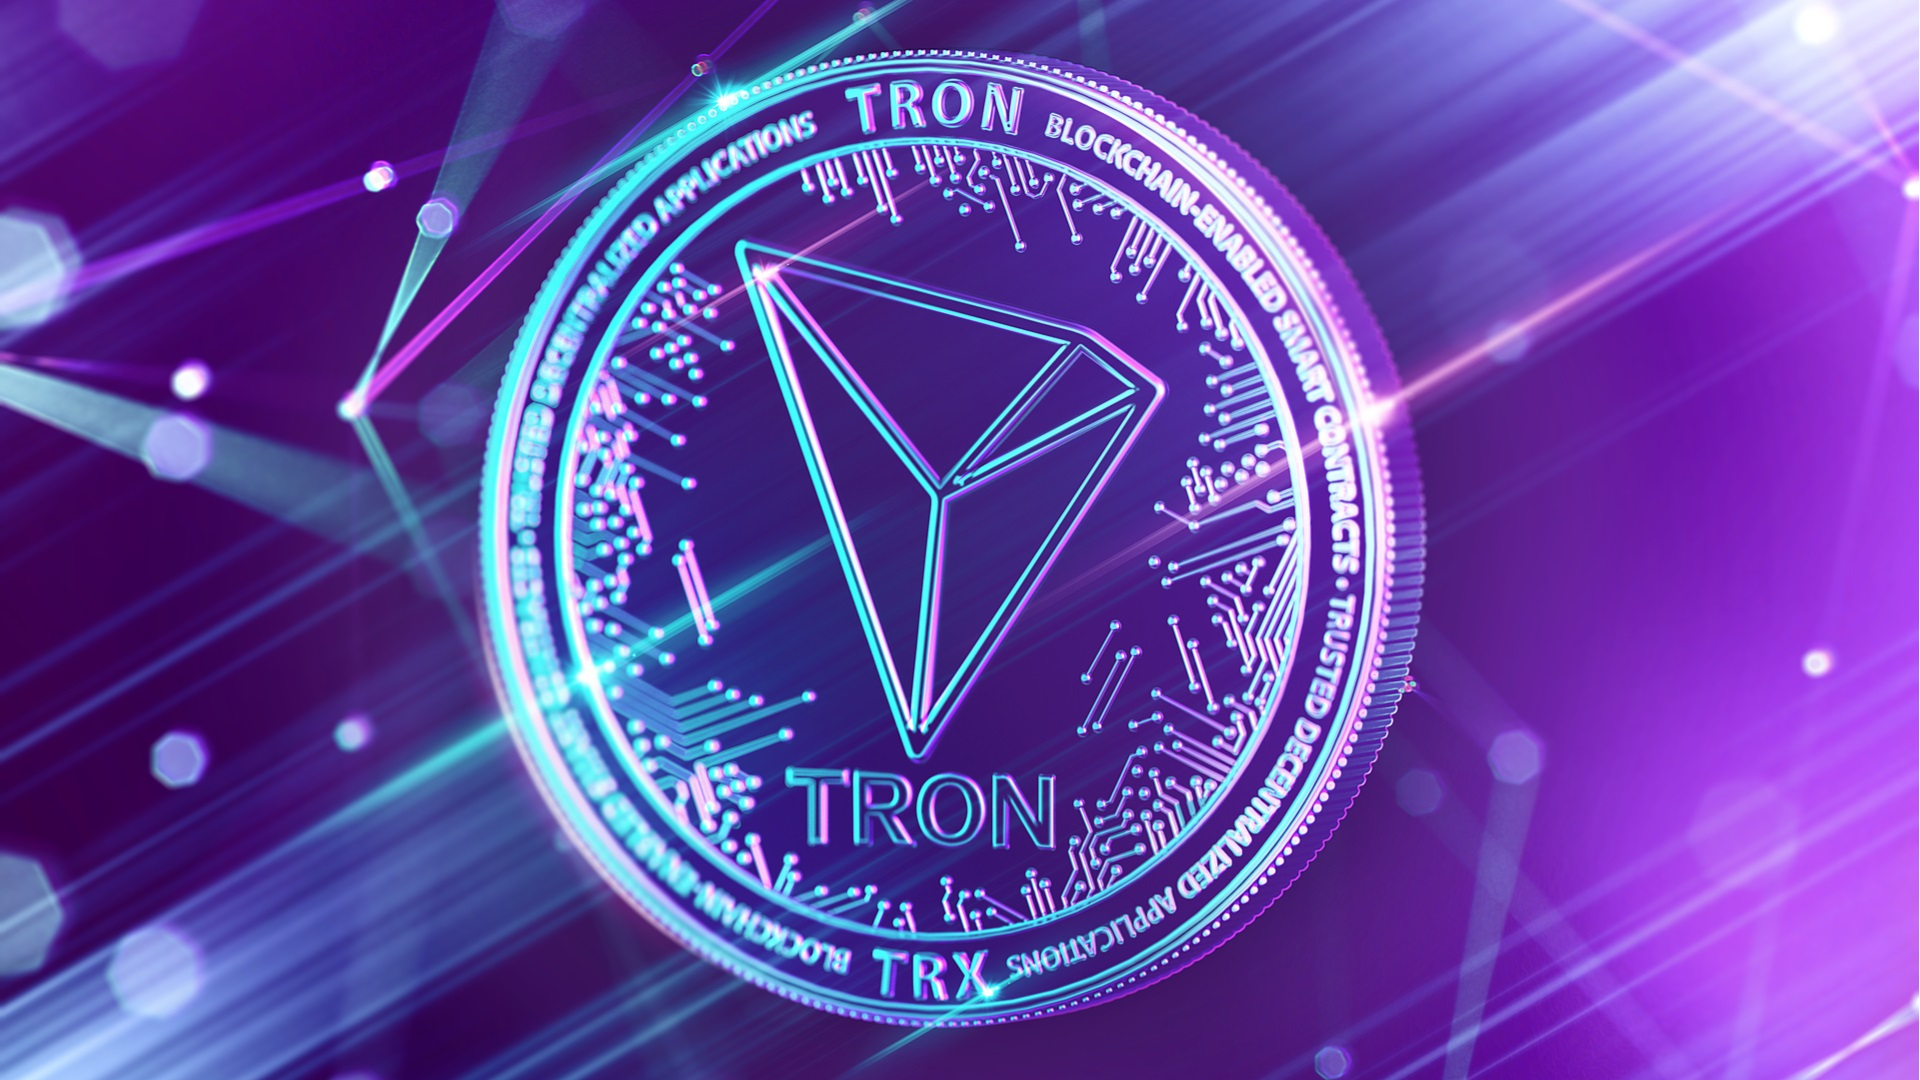 BitTorrent Launches A New Cryptocurrency With The Tron